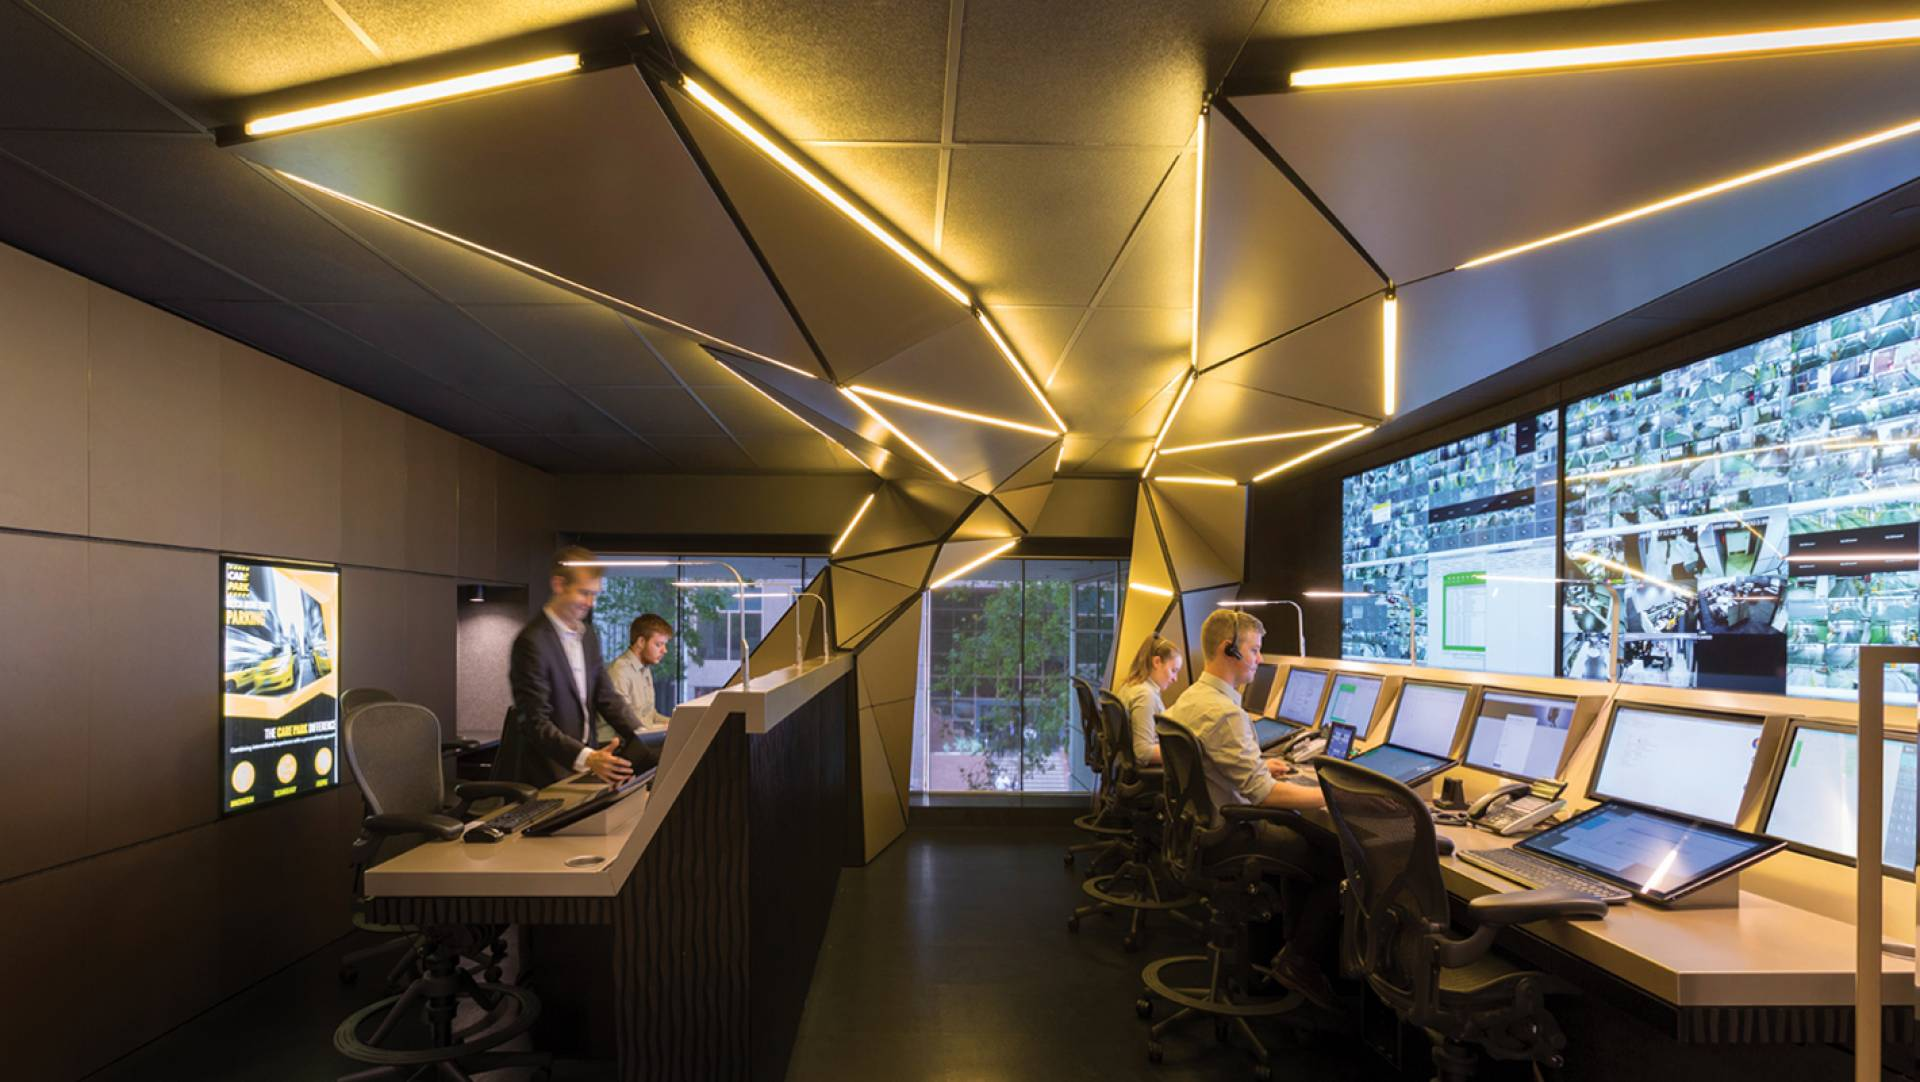 Office Fit Out & Control Room Design Melbourne - Lighting Installation